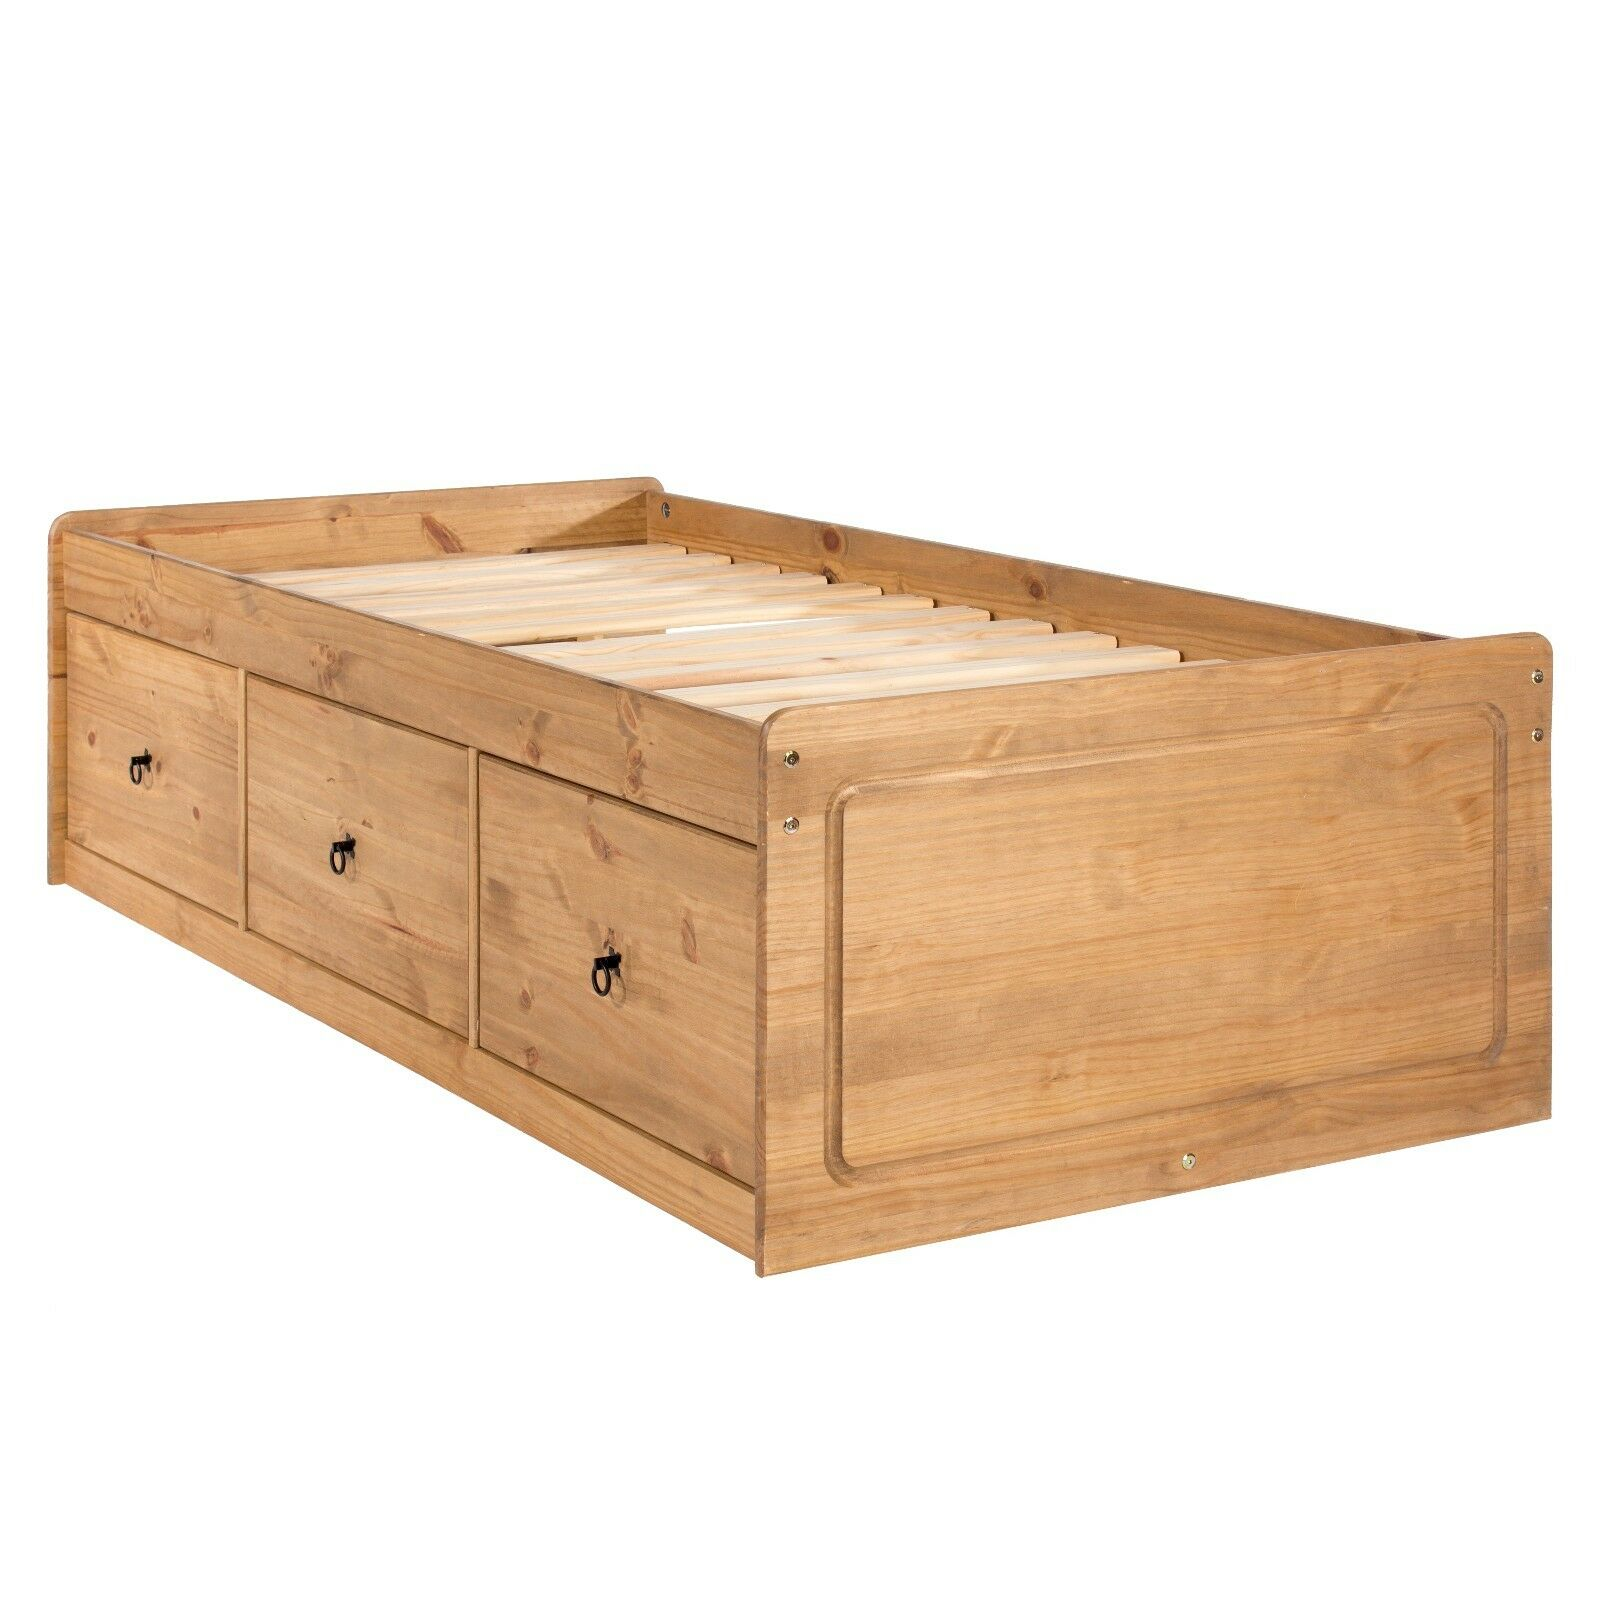 Childrens bed cabin with drawers thule solid pine wood